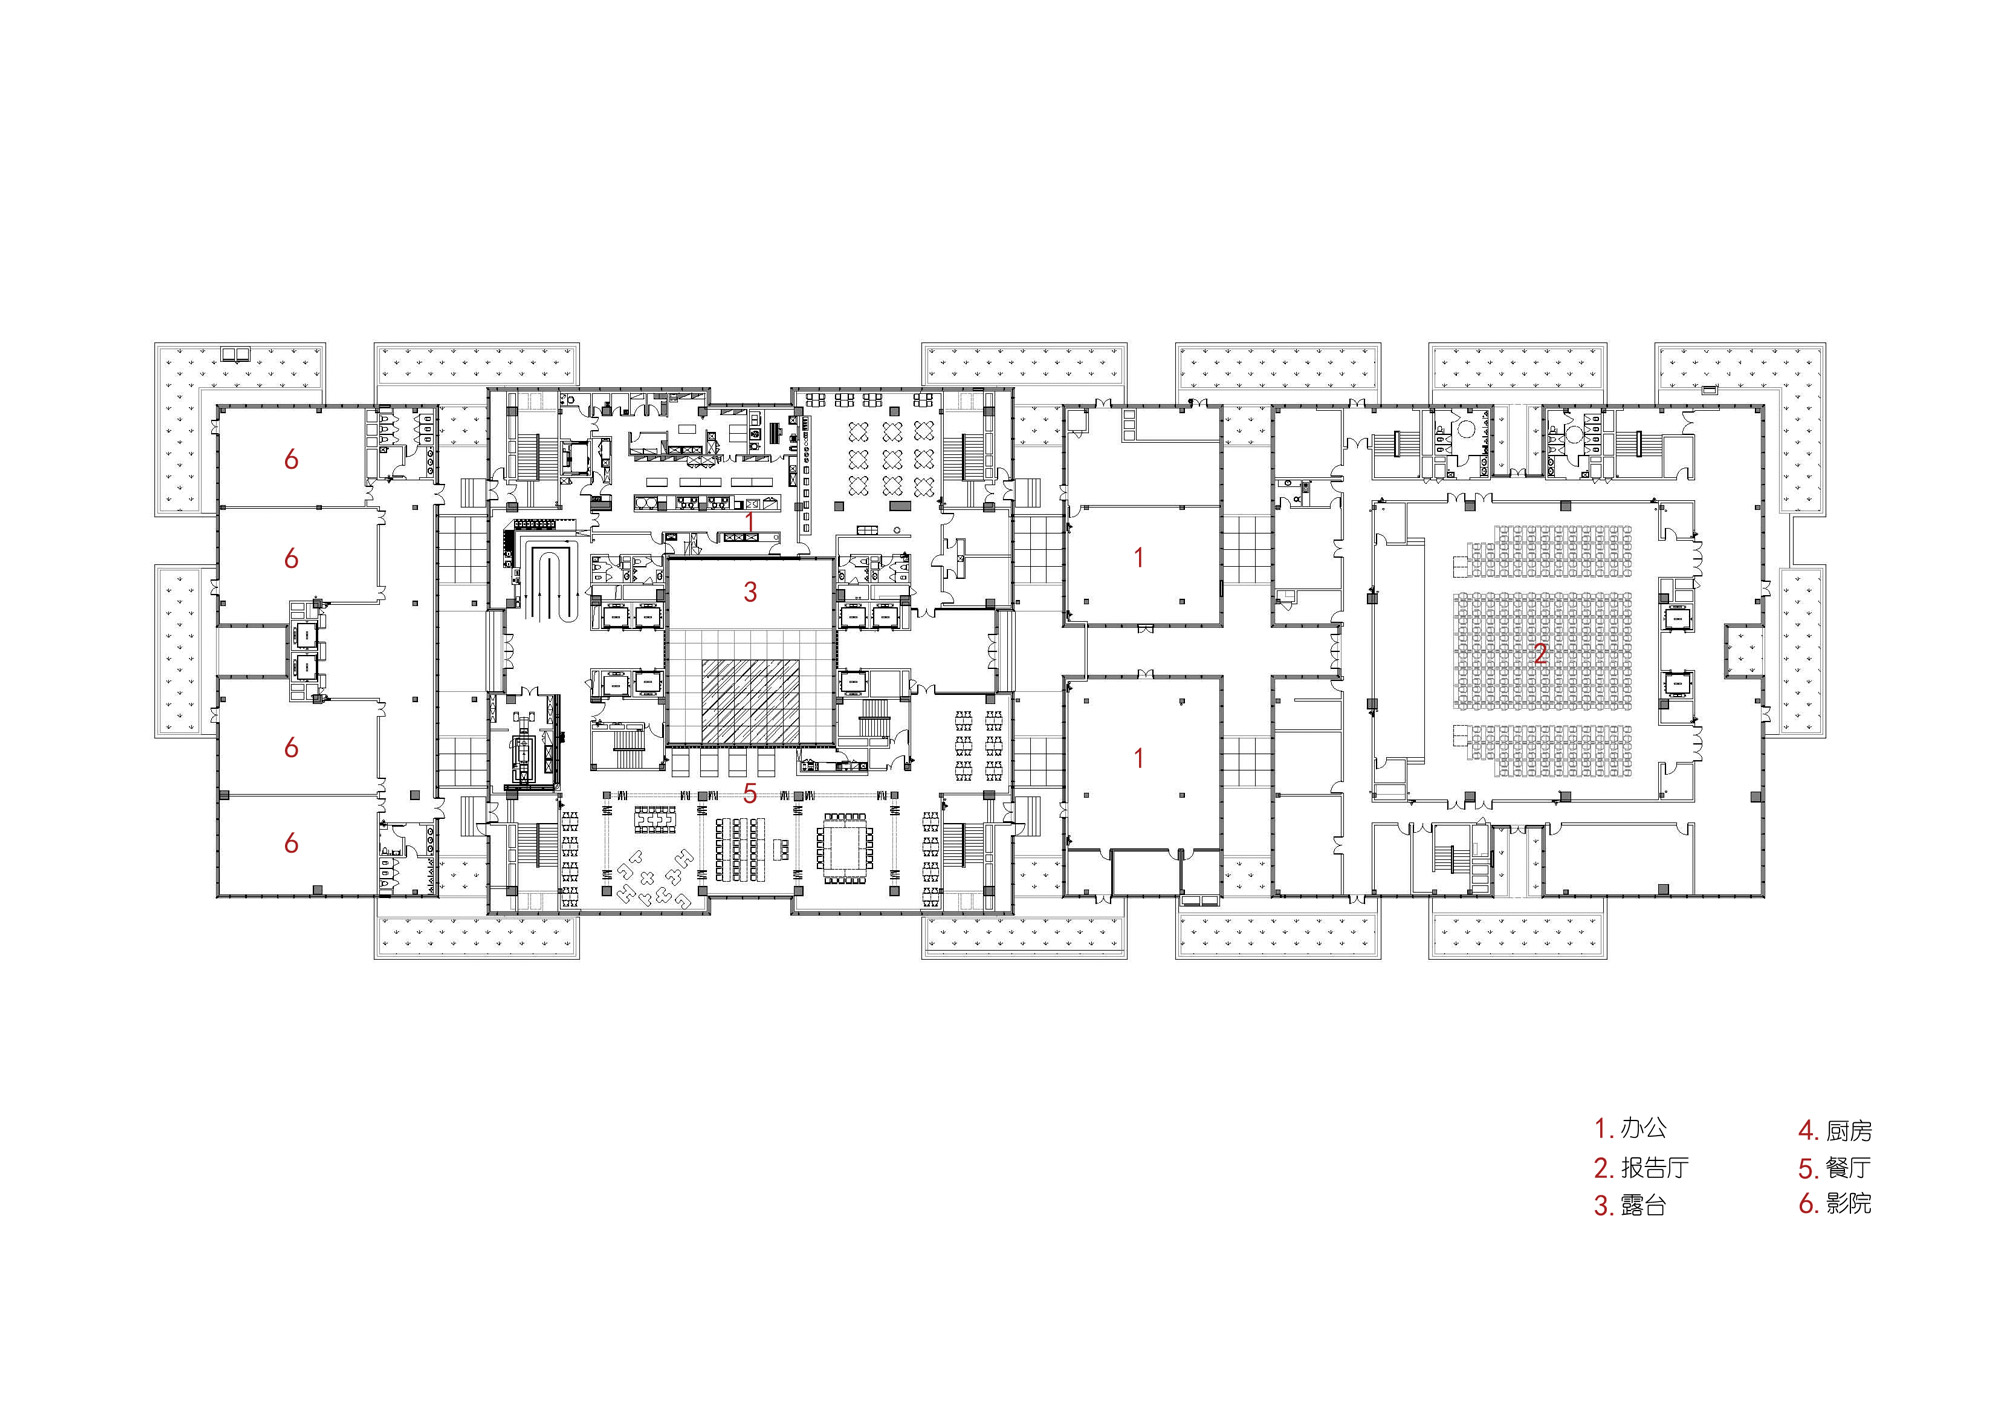 Node 02 The Architectural Design & Research Institute of Zhejiang University Co., Ltd.}